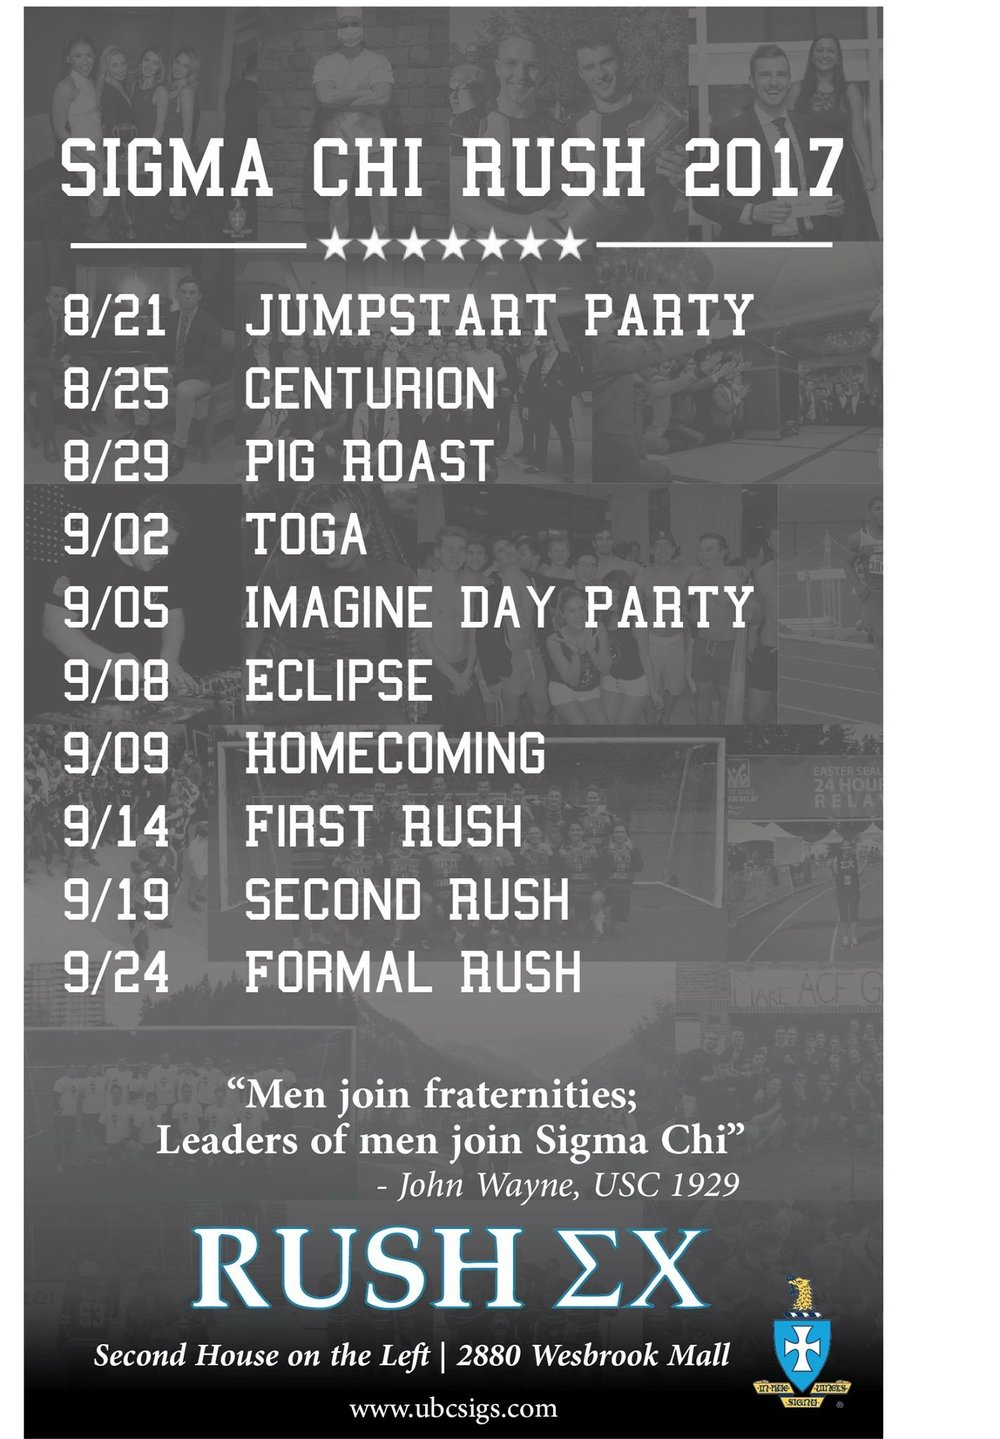 Check us out! - We invite you to get in touch and come out to our upcoming events. For more information on Rush, speak to any of our brothers or our Recruitment Chairmen.